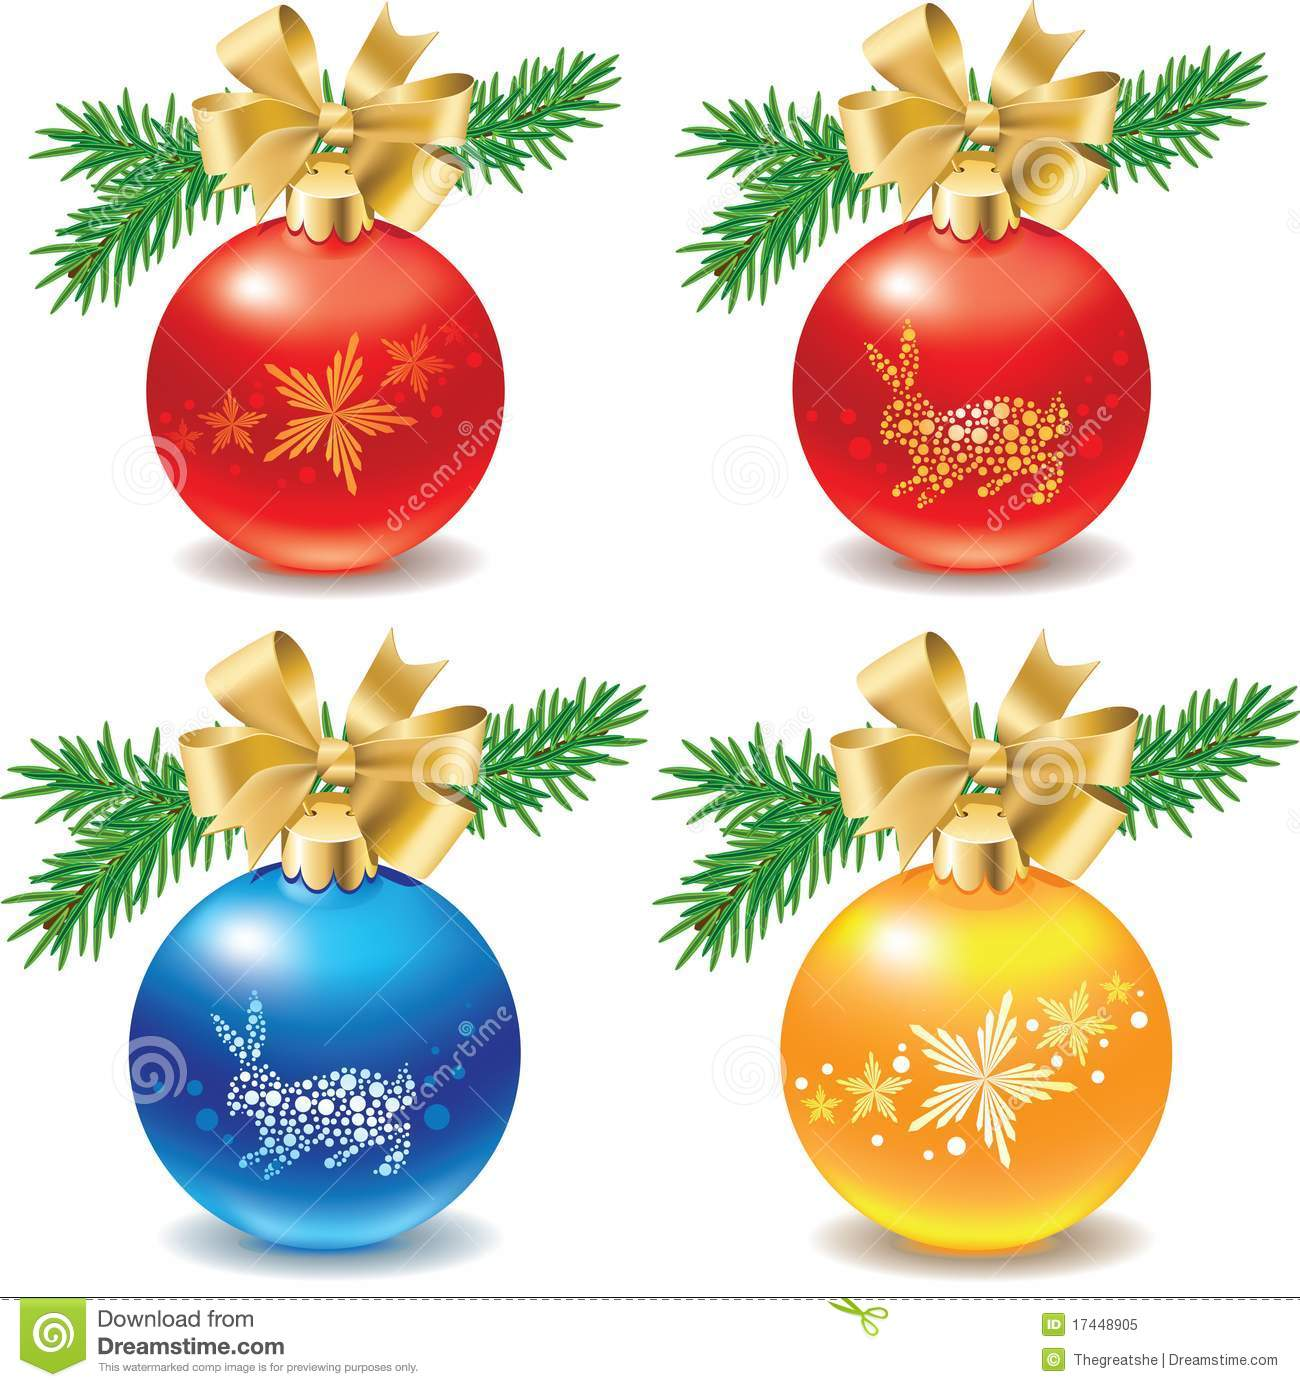 download icon set of christmas balls decorations stock vector illustration of icon festive - Christmas Ball Decorations